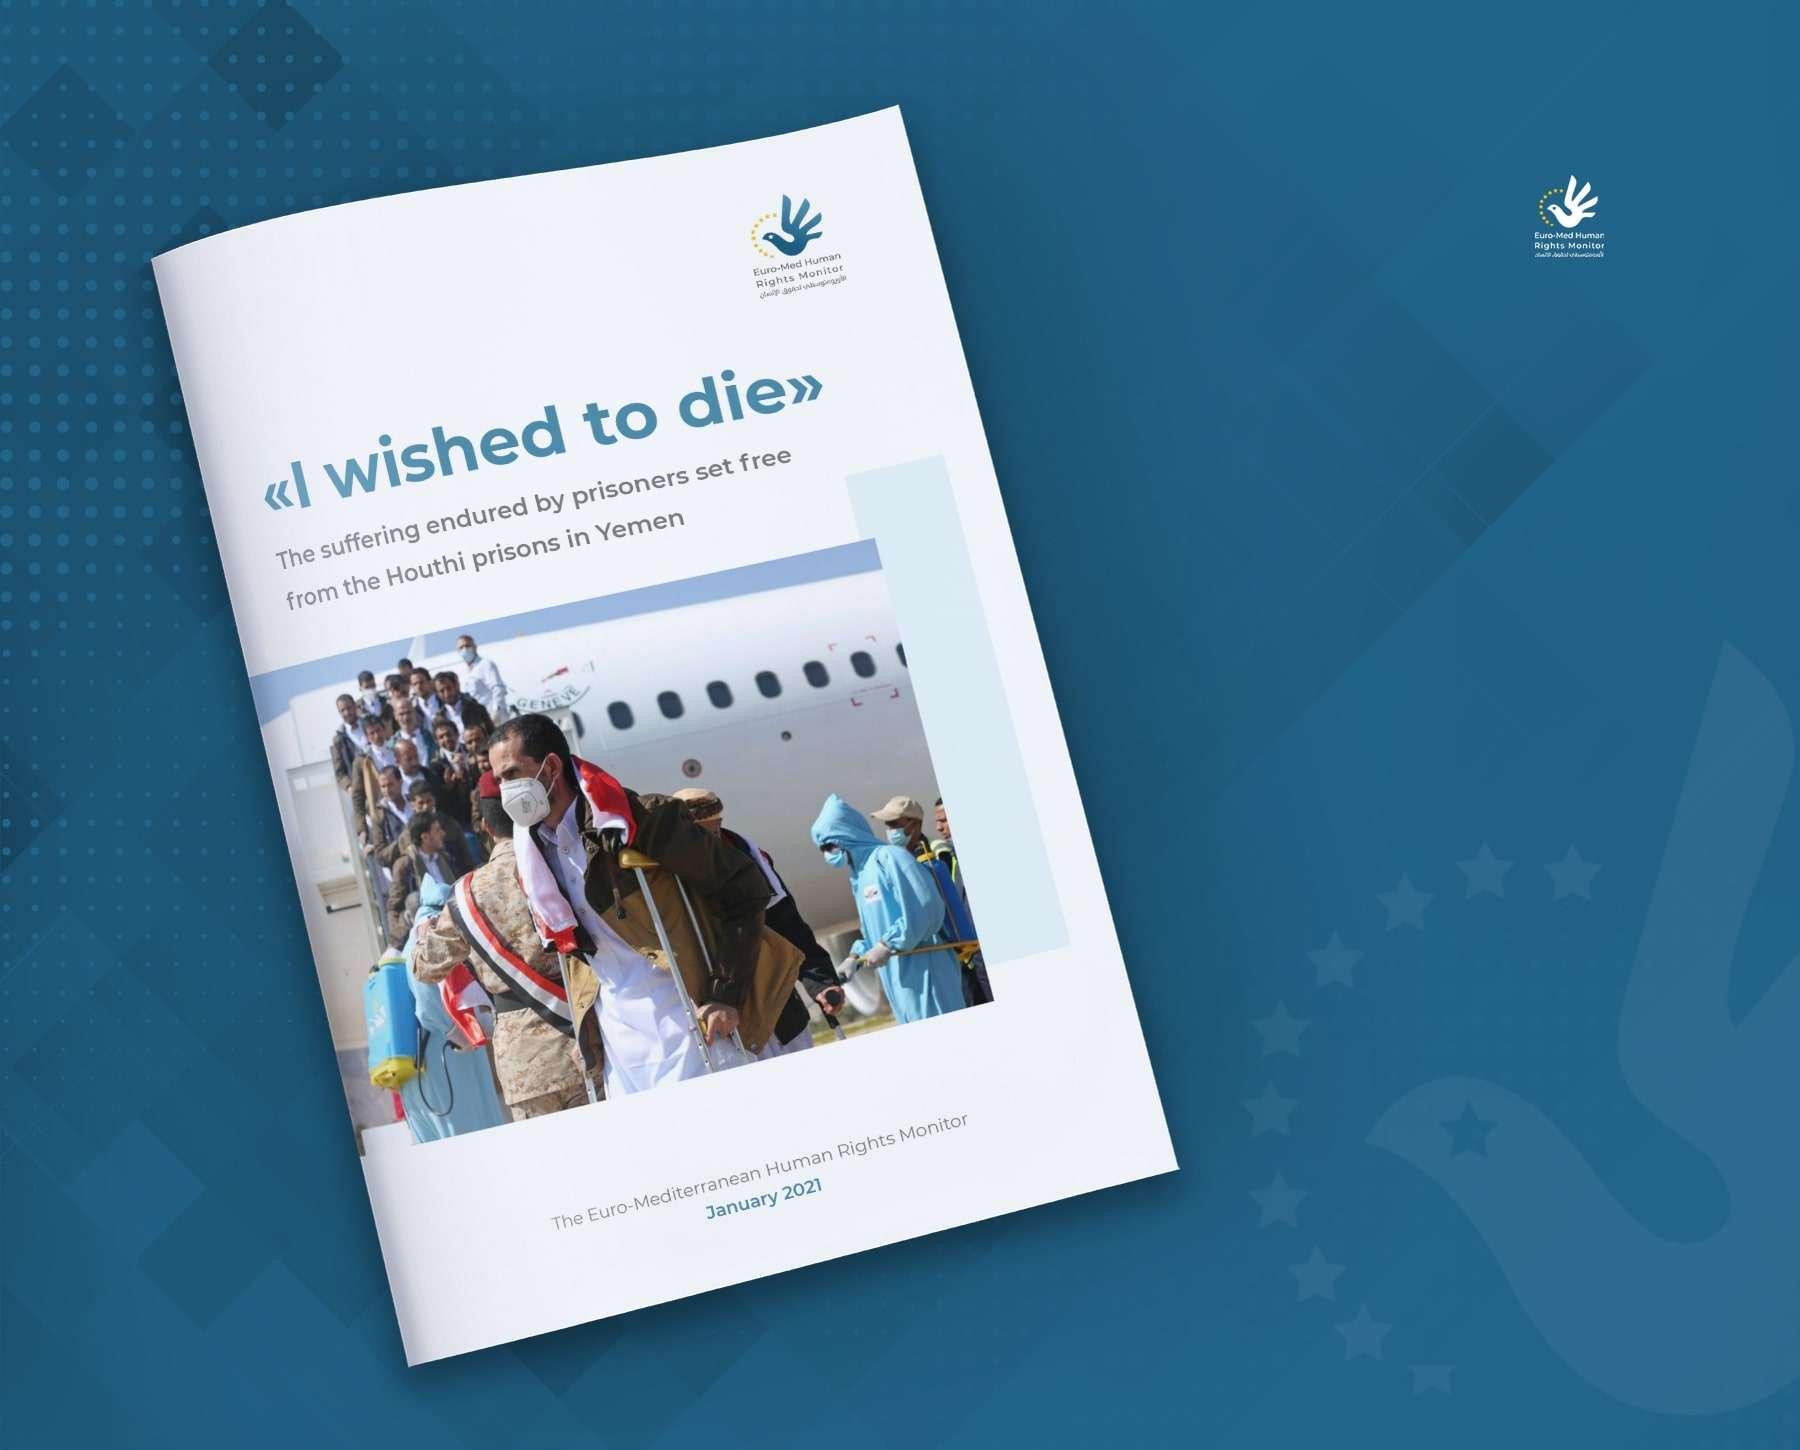 """""""I wished to die"""": New report documenting the suffering of prisoners in Houthi prisons"""